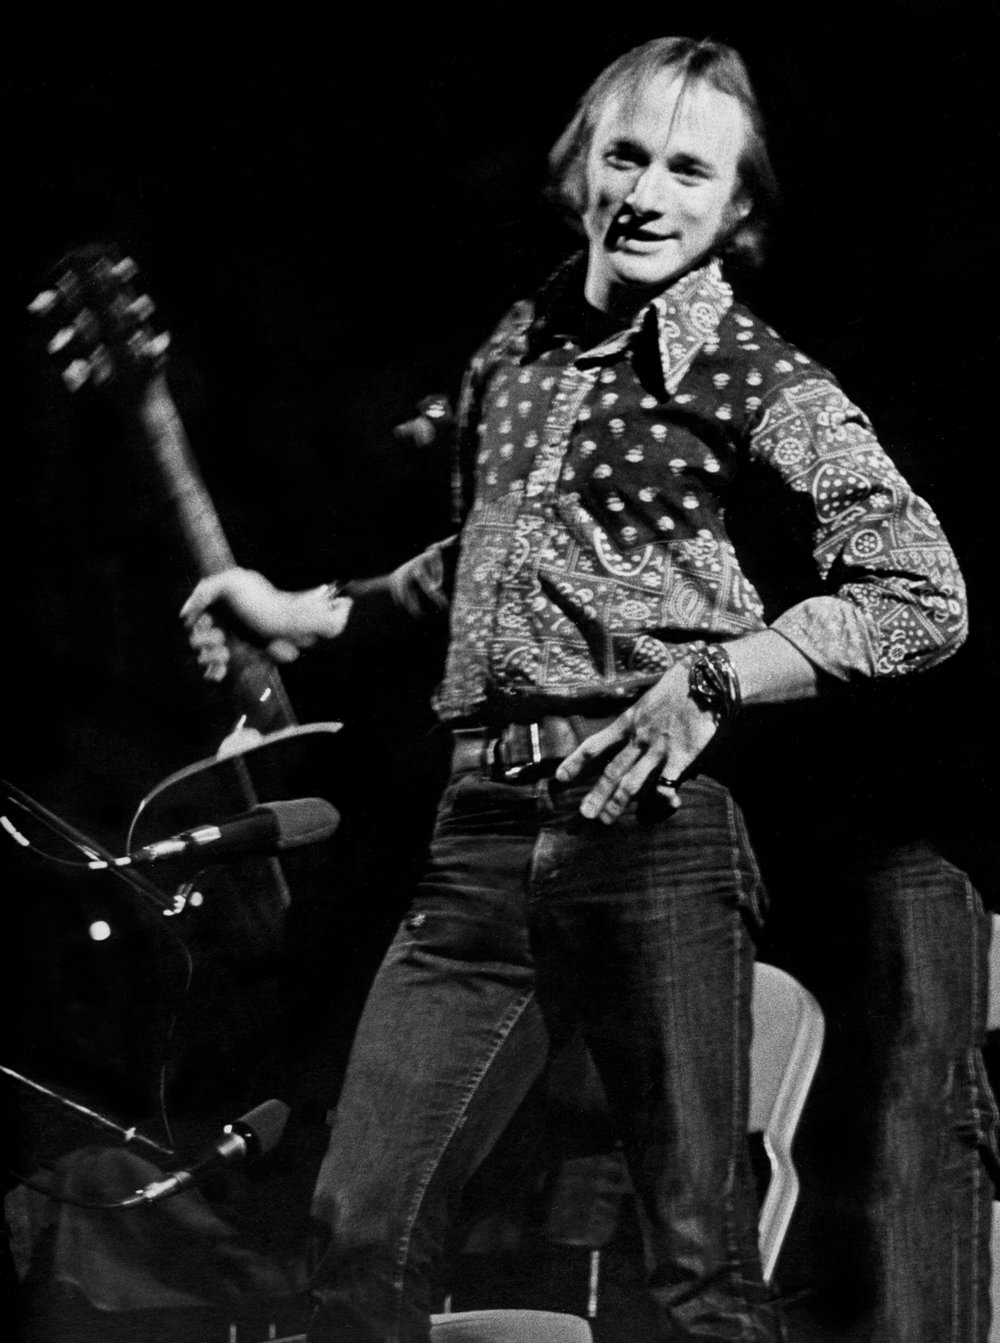 Stephen Stills, Los Angeles 1972